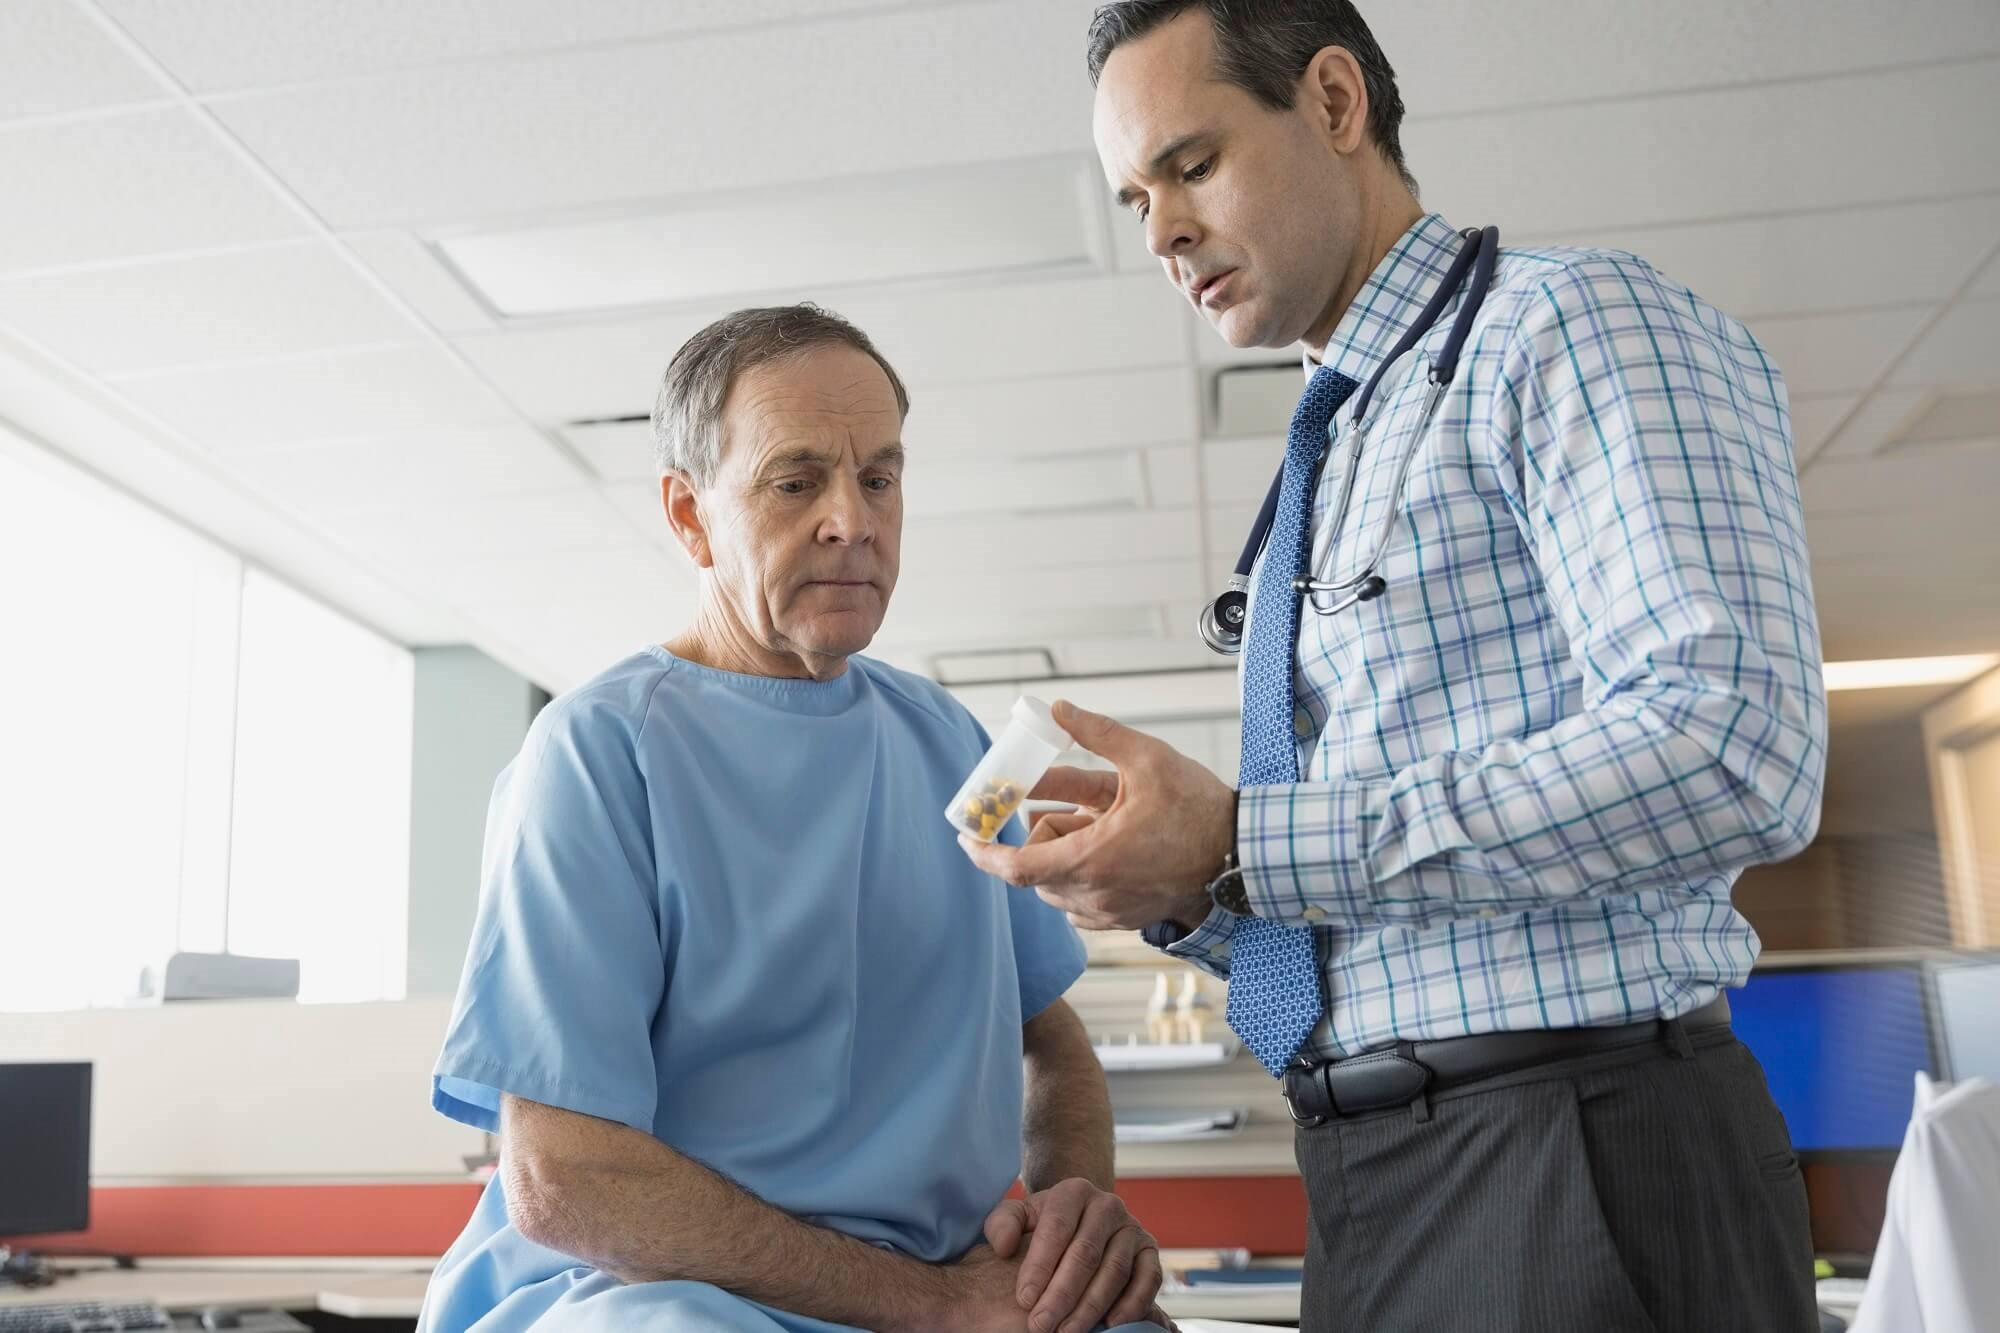 Patients who received elotuzumab plus pomalidomide and dexamethasone demonstrated longer progression-free survival.